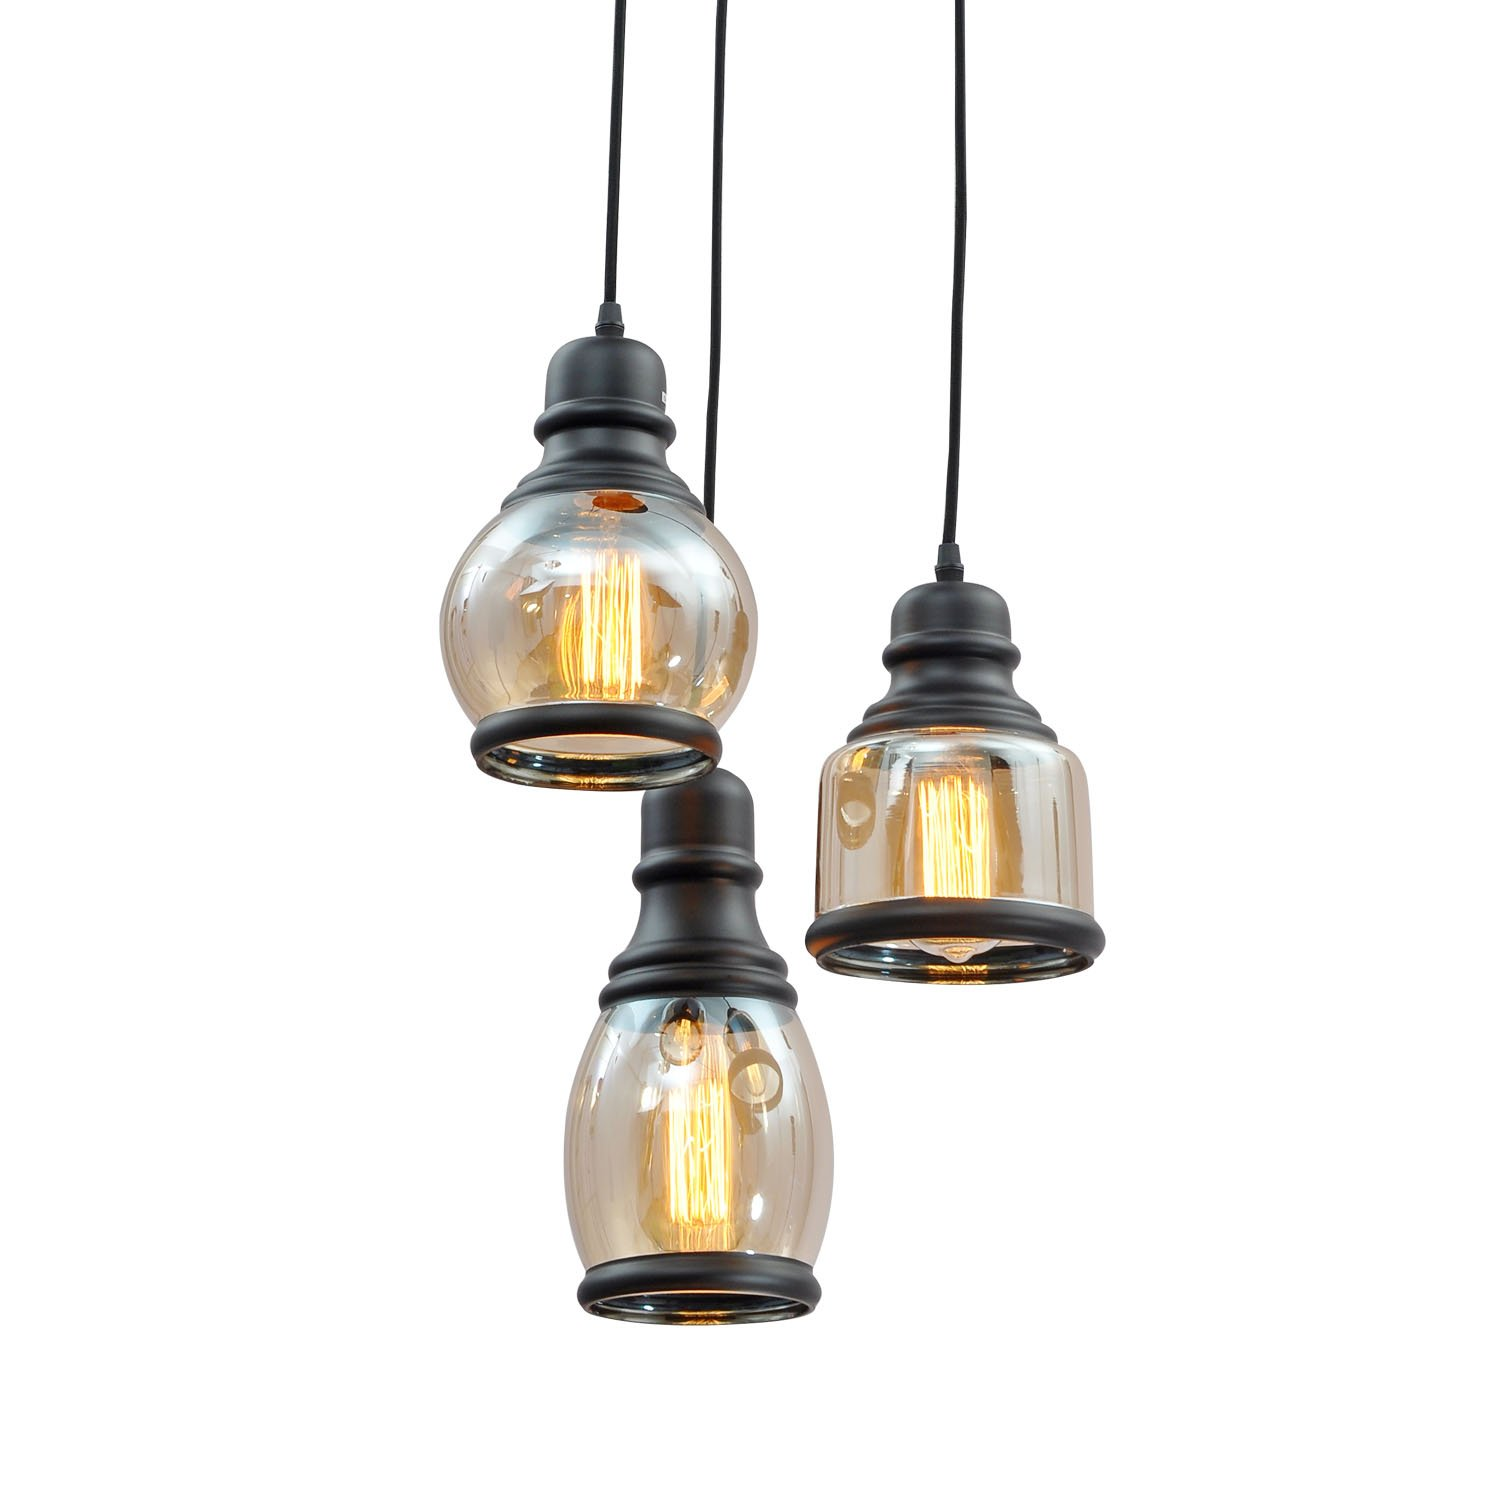 Top Pendant Light Fixtures | Amazon.com | Lighting & Ceiling Fans  TJ91